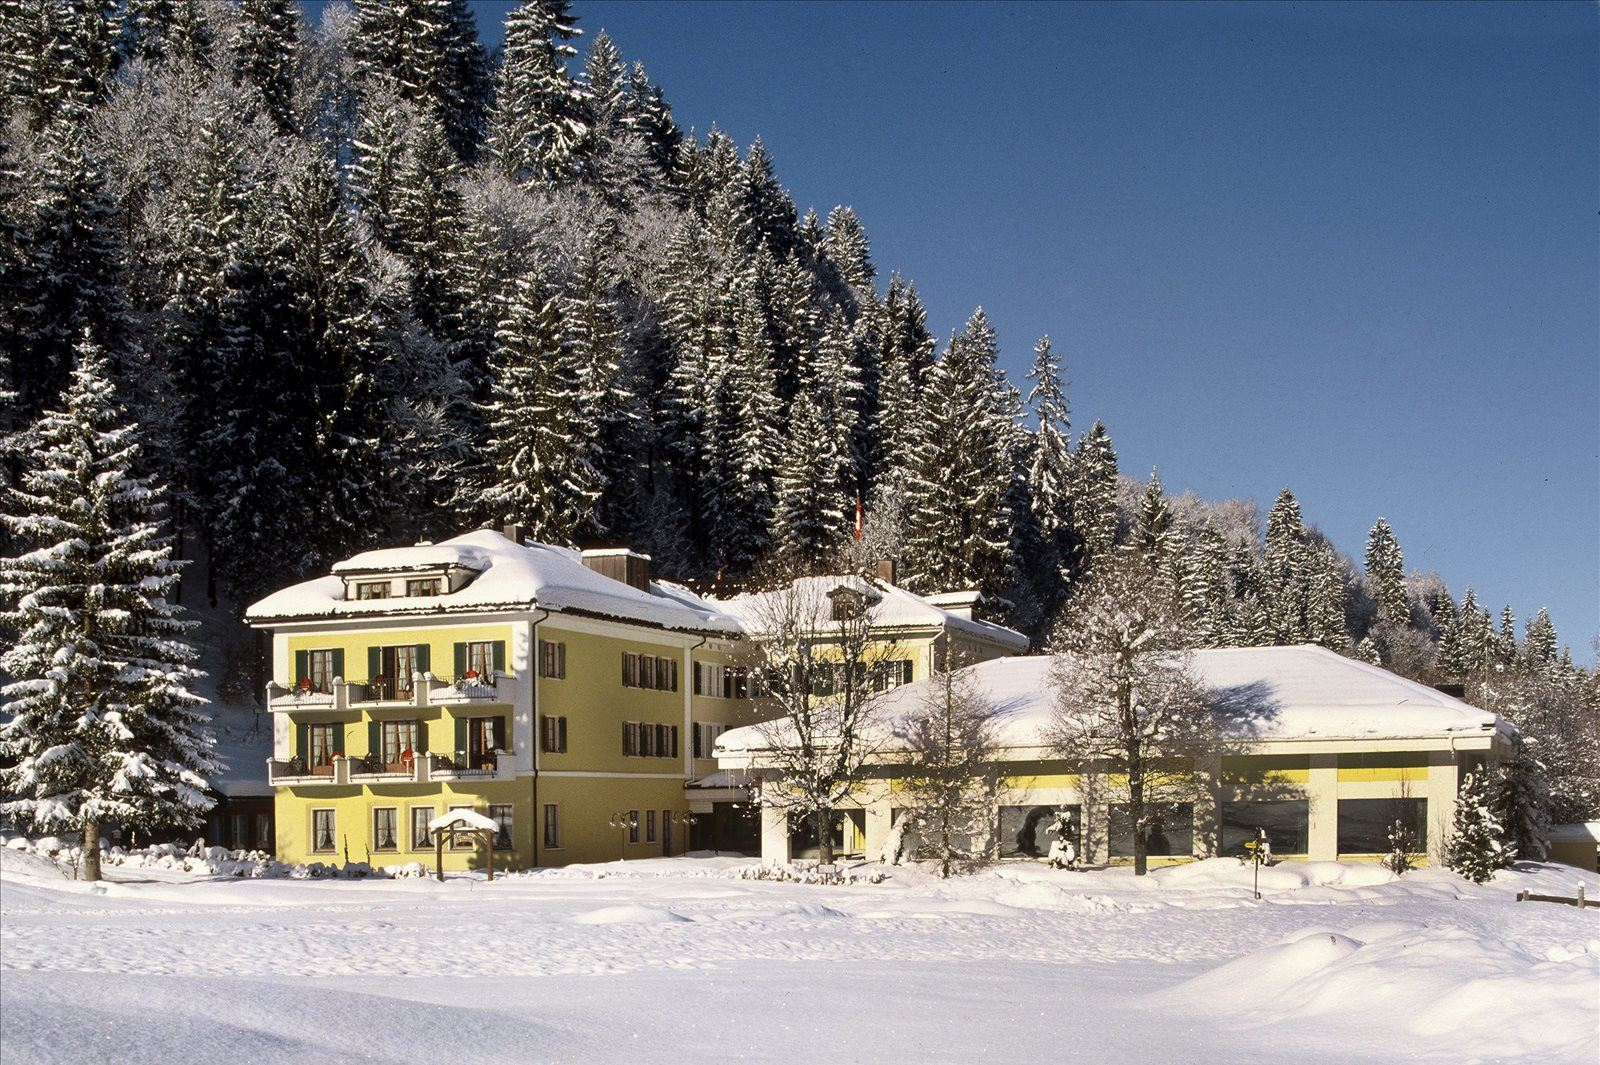 Hotel Bad Serneus Klosters